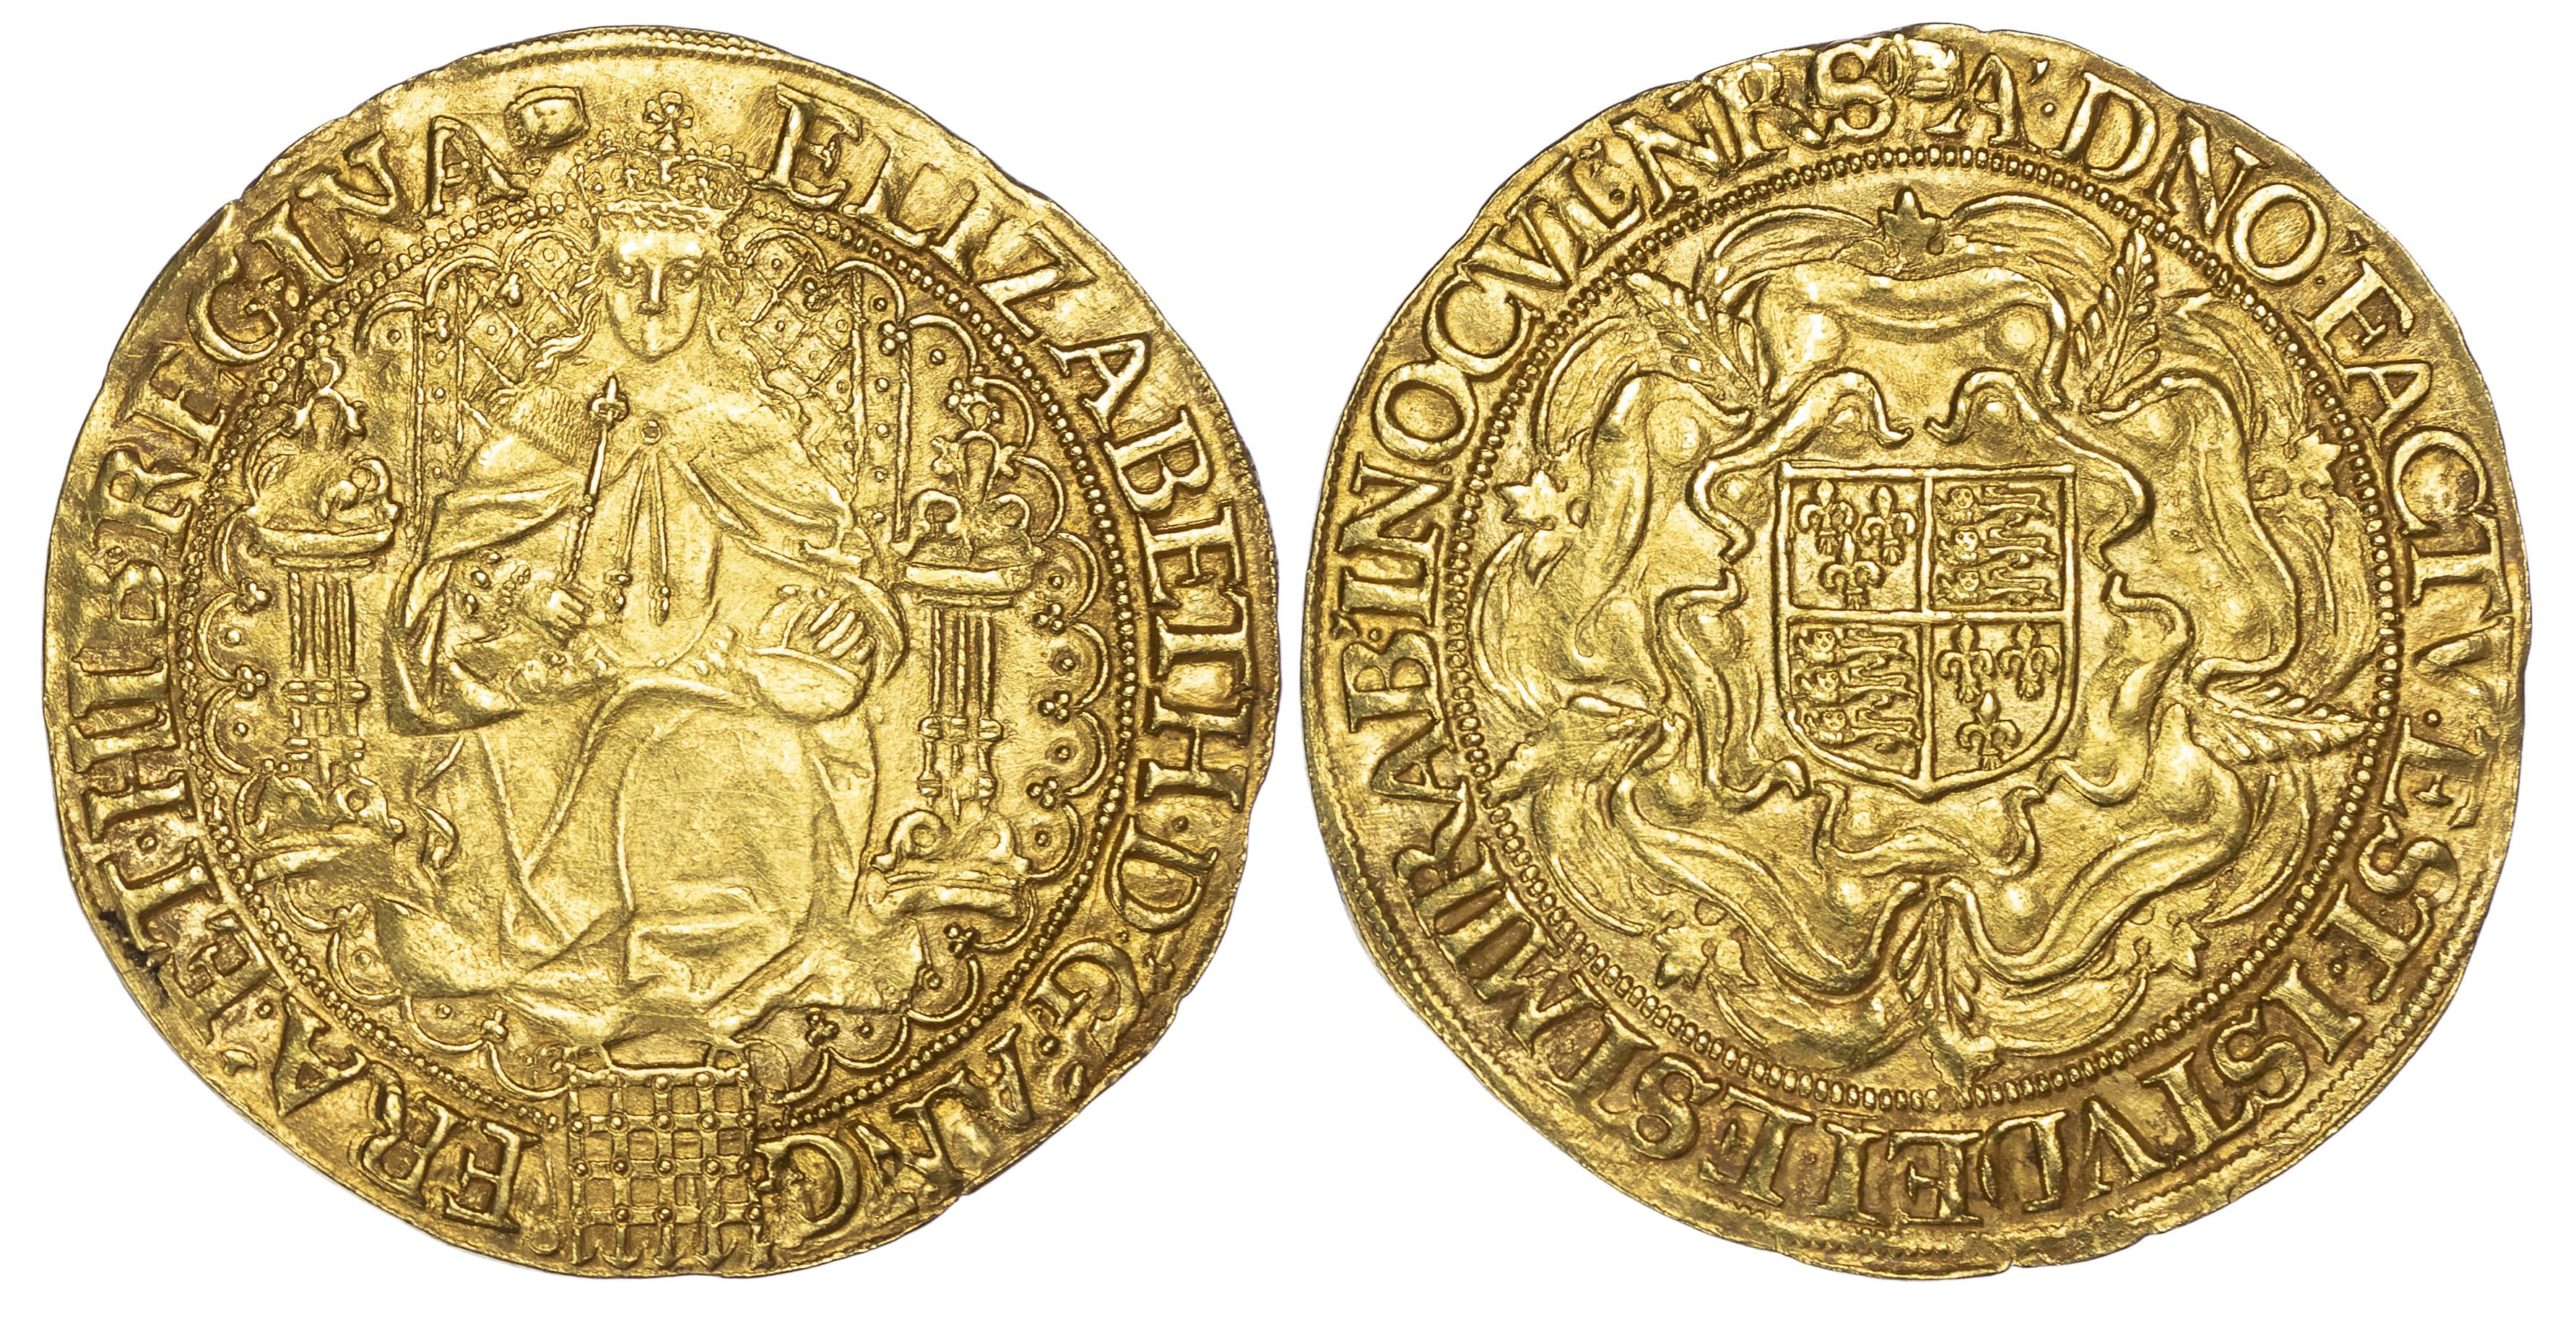 Elizabeth I (1558-1603), 'Fine' Gold Sovereign of thirty shillings, sixth issue